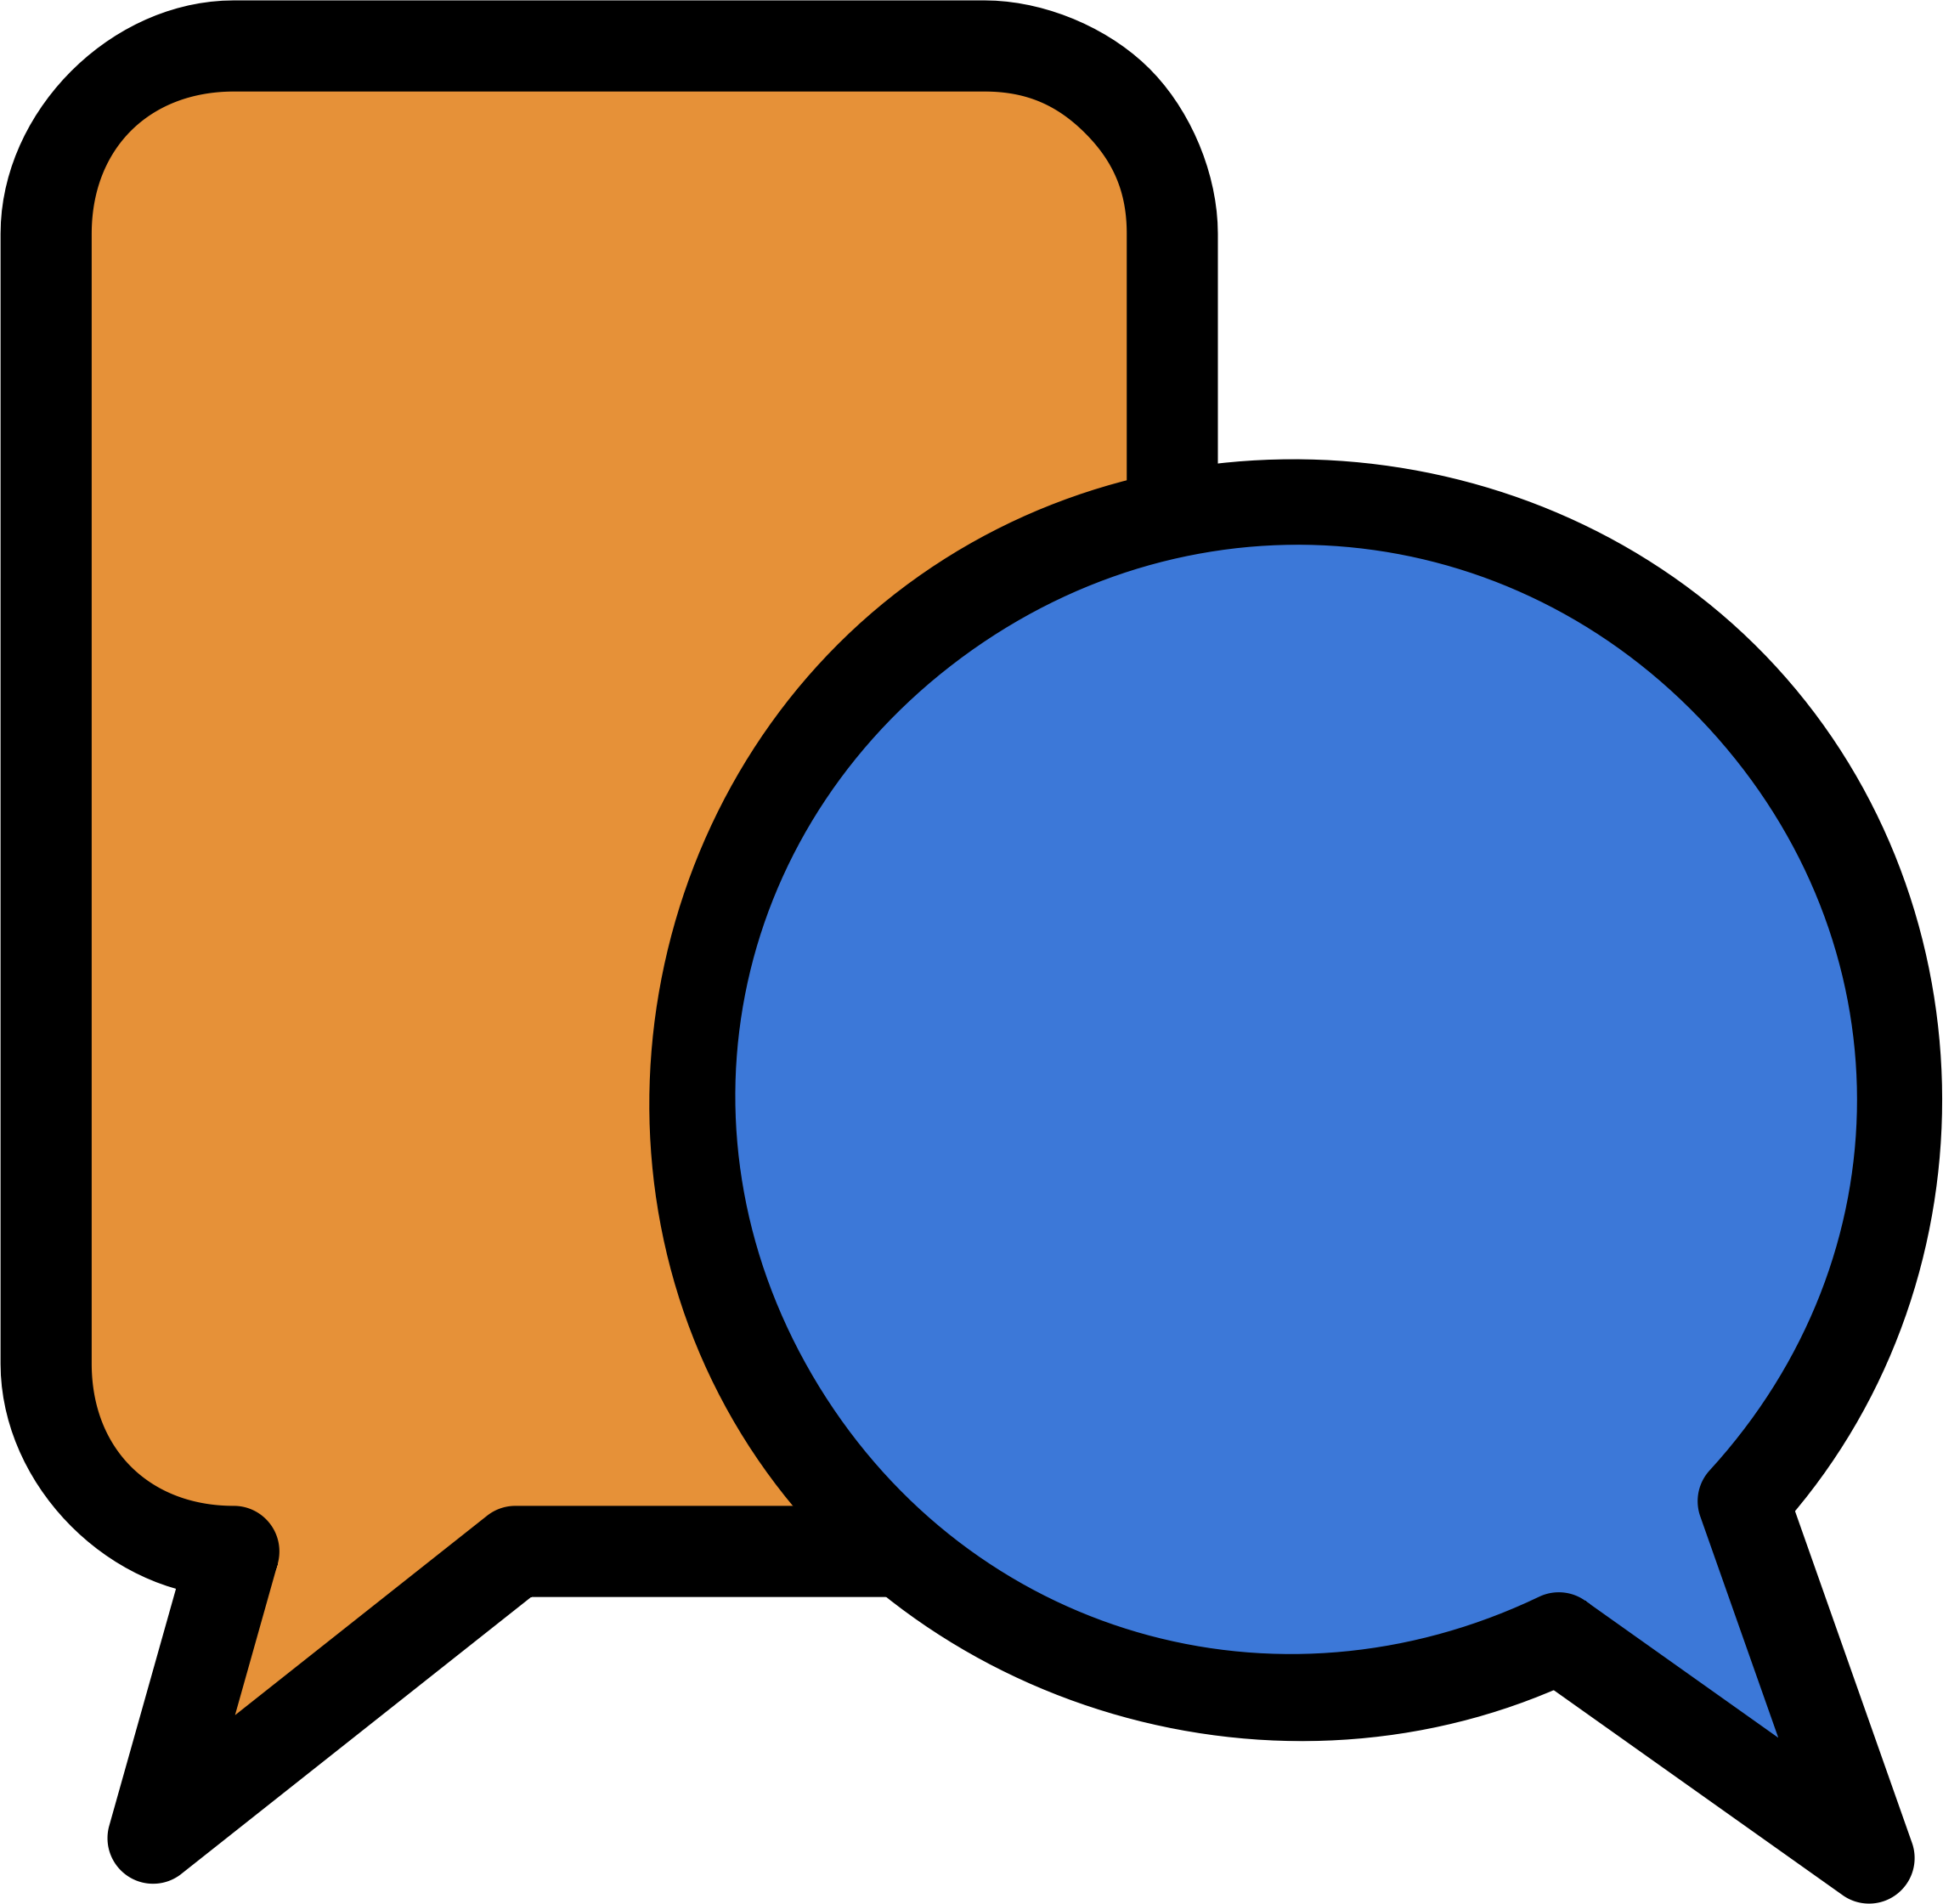 Discussion clipart. Moodle icon big image